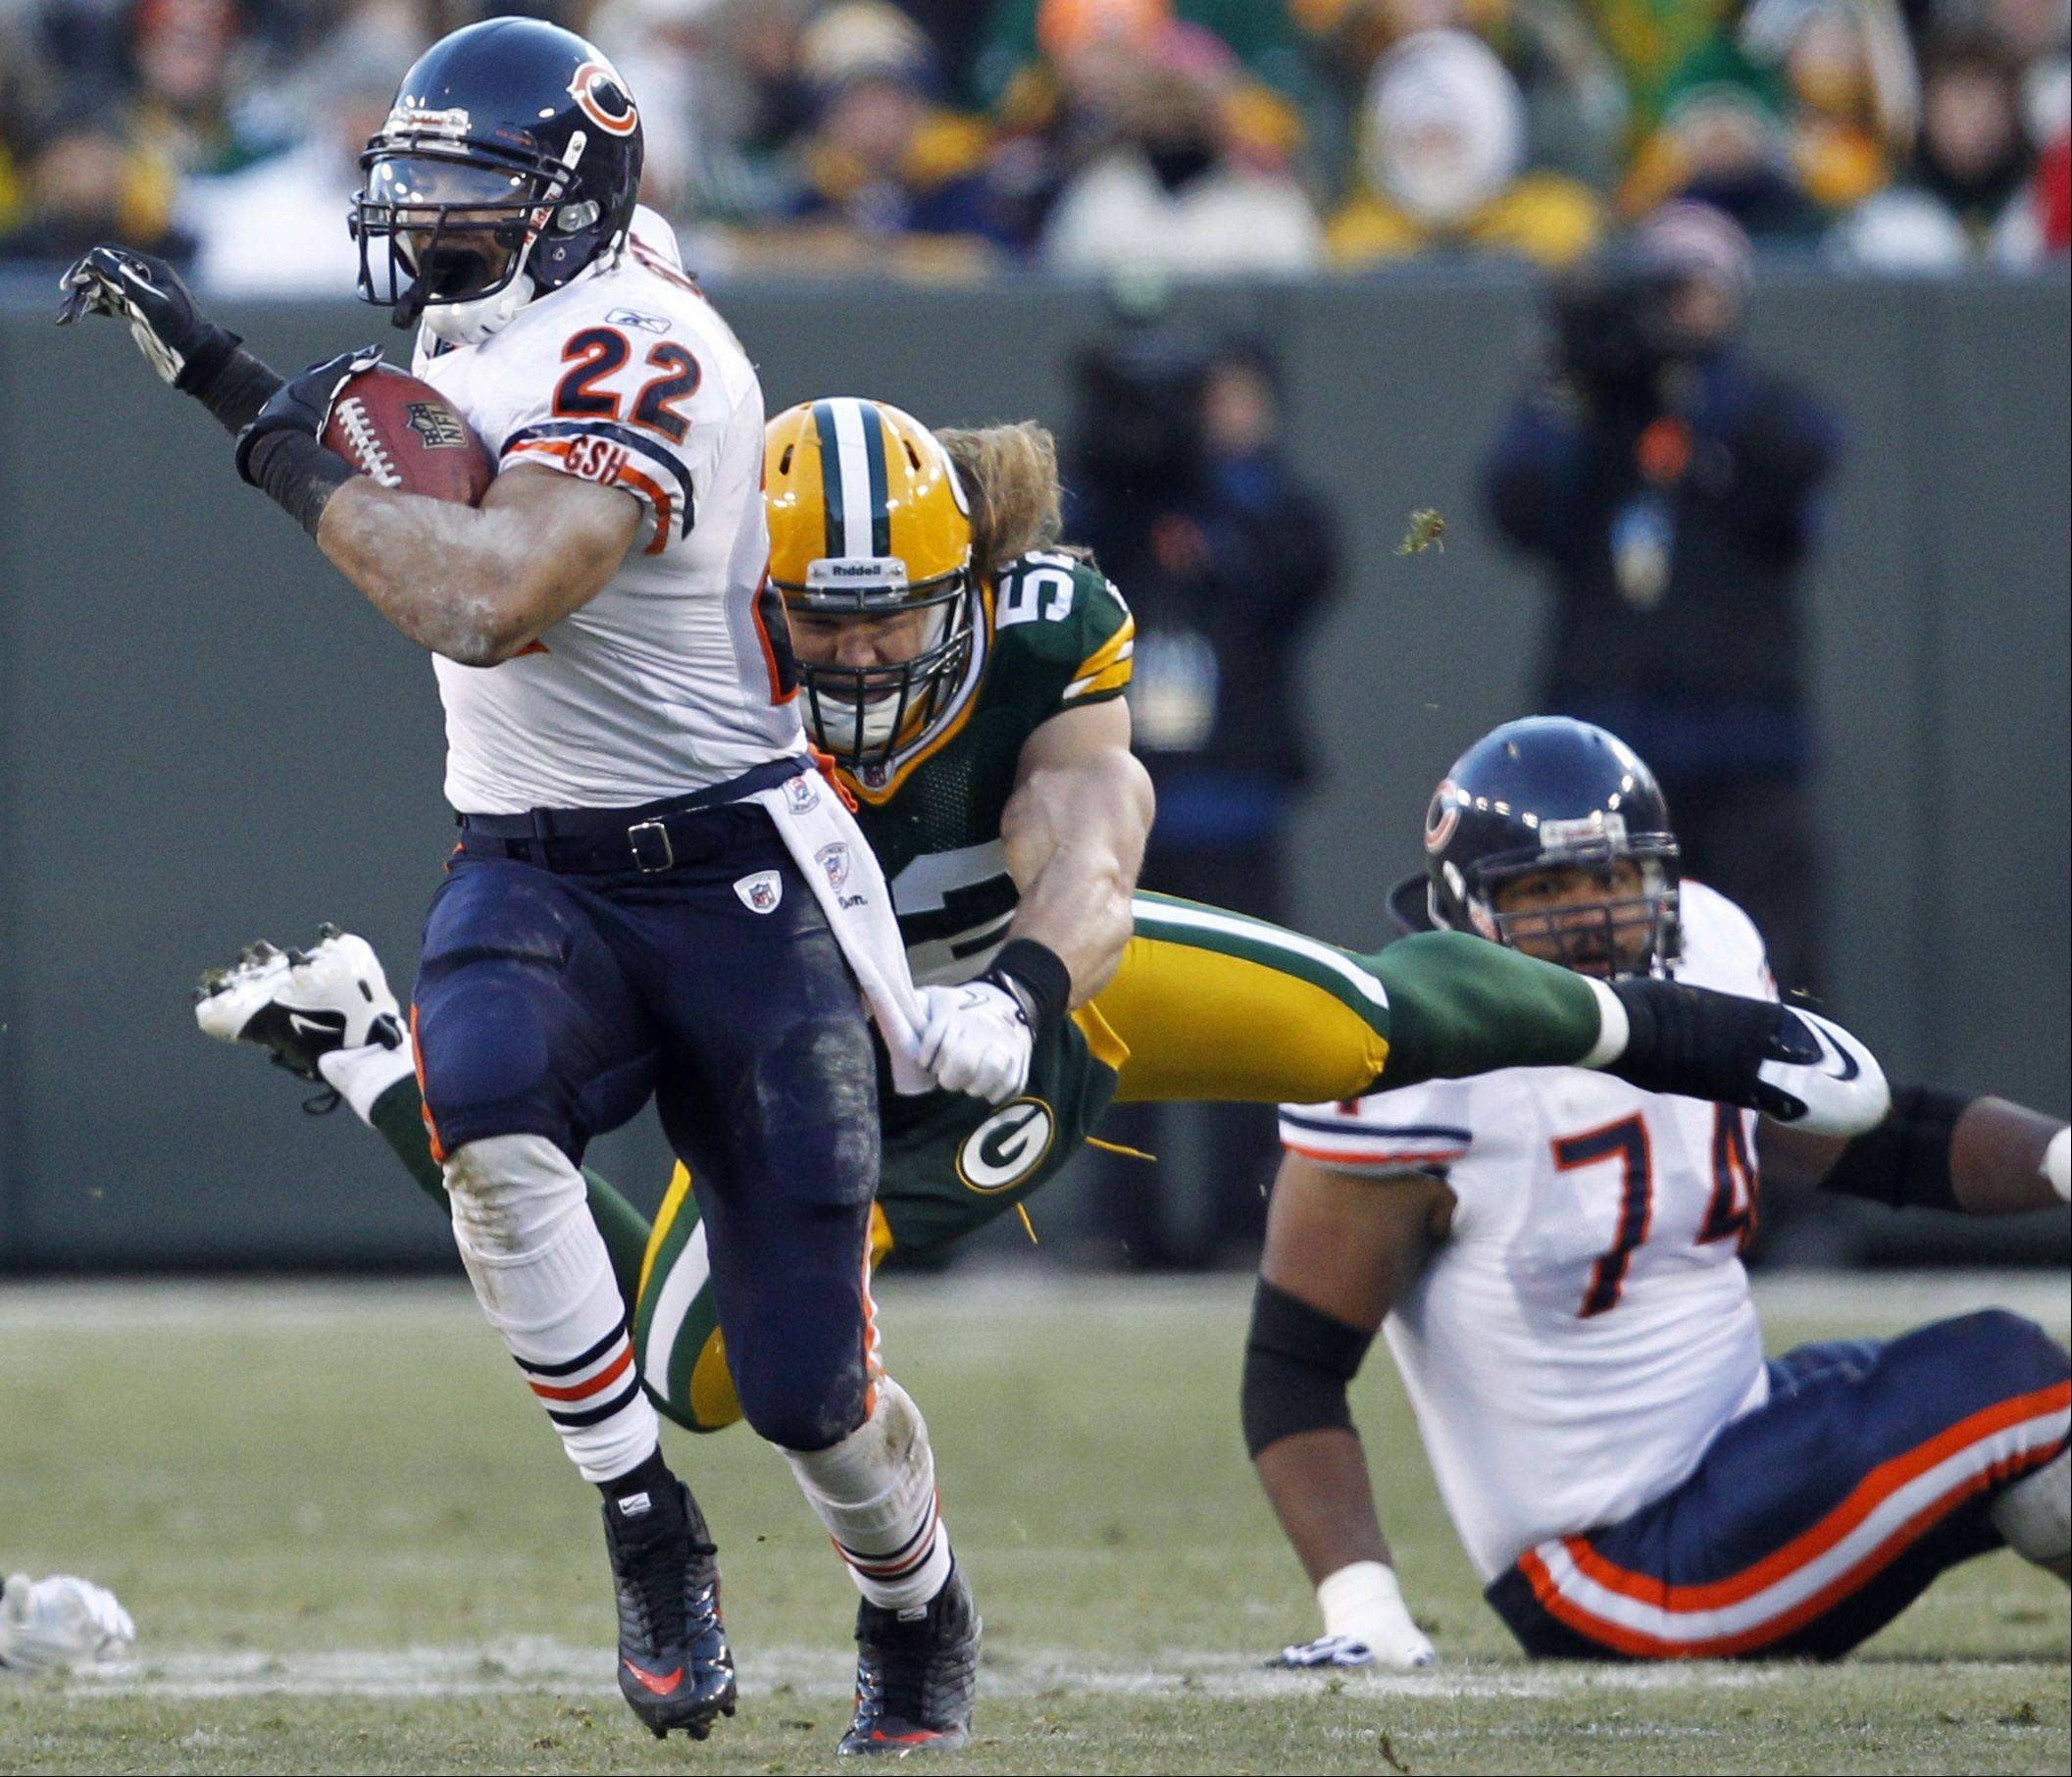 Fantasy football writer John Dietz believes that the Bears� Matt Forte will be a lock for 1,500 yards from scrimmage this season, which is a big reason Dietz ranked Forte fourth among running backs.